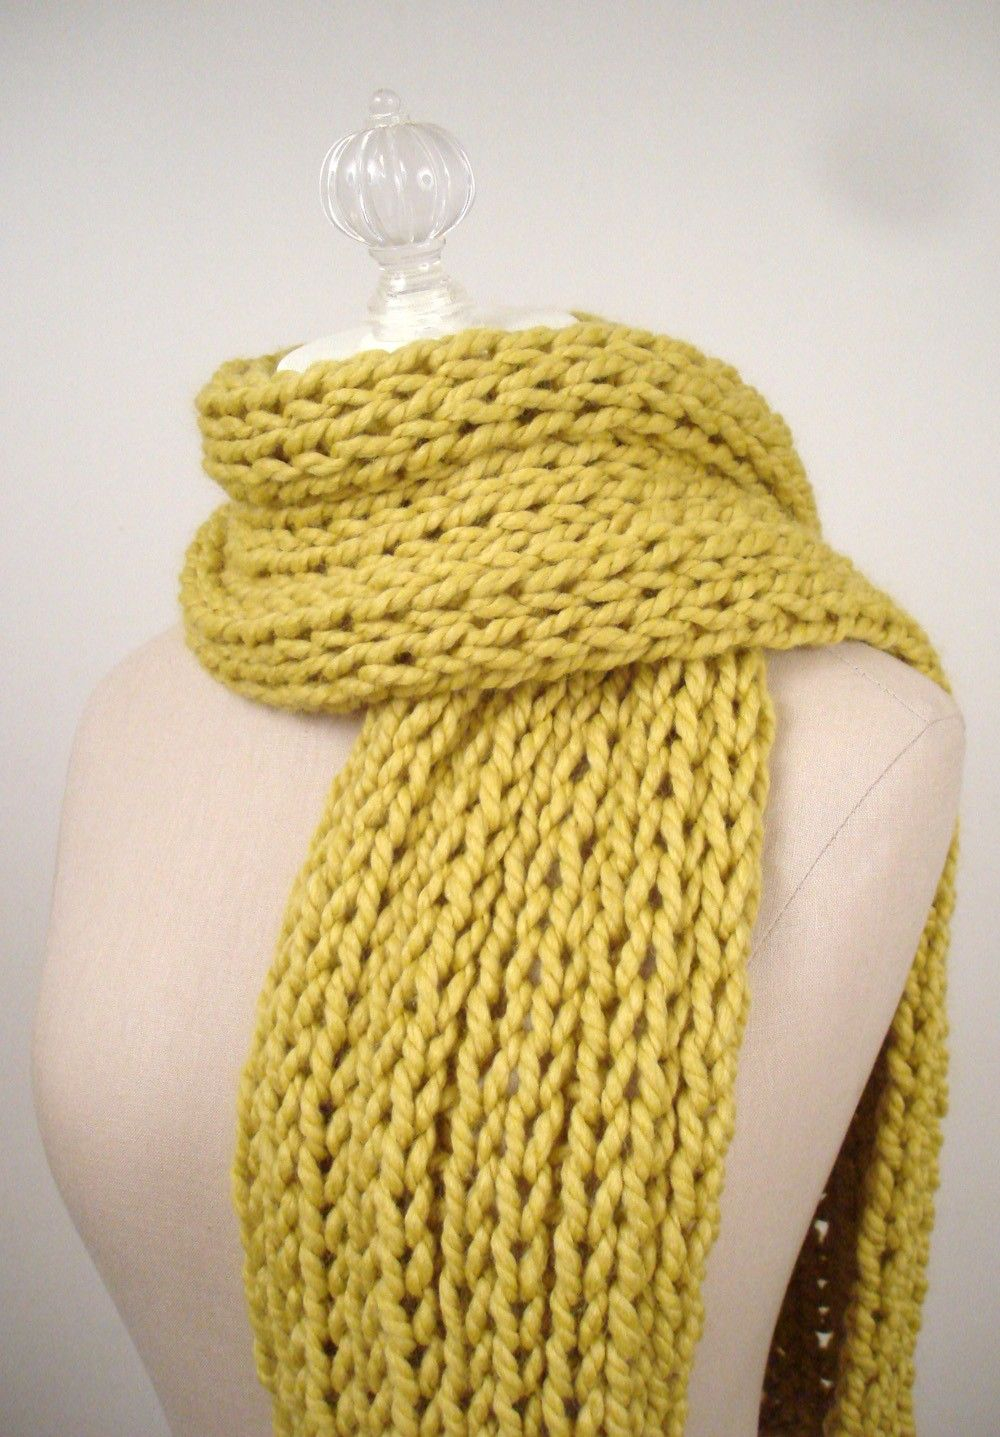 Knitting Patterns Easy Scarf Phydeaux Designs Totally Easy And Absolutely Free Knitting Pattern